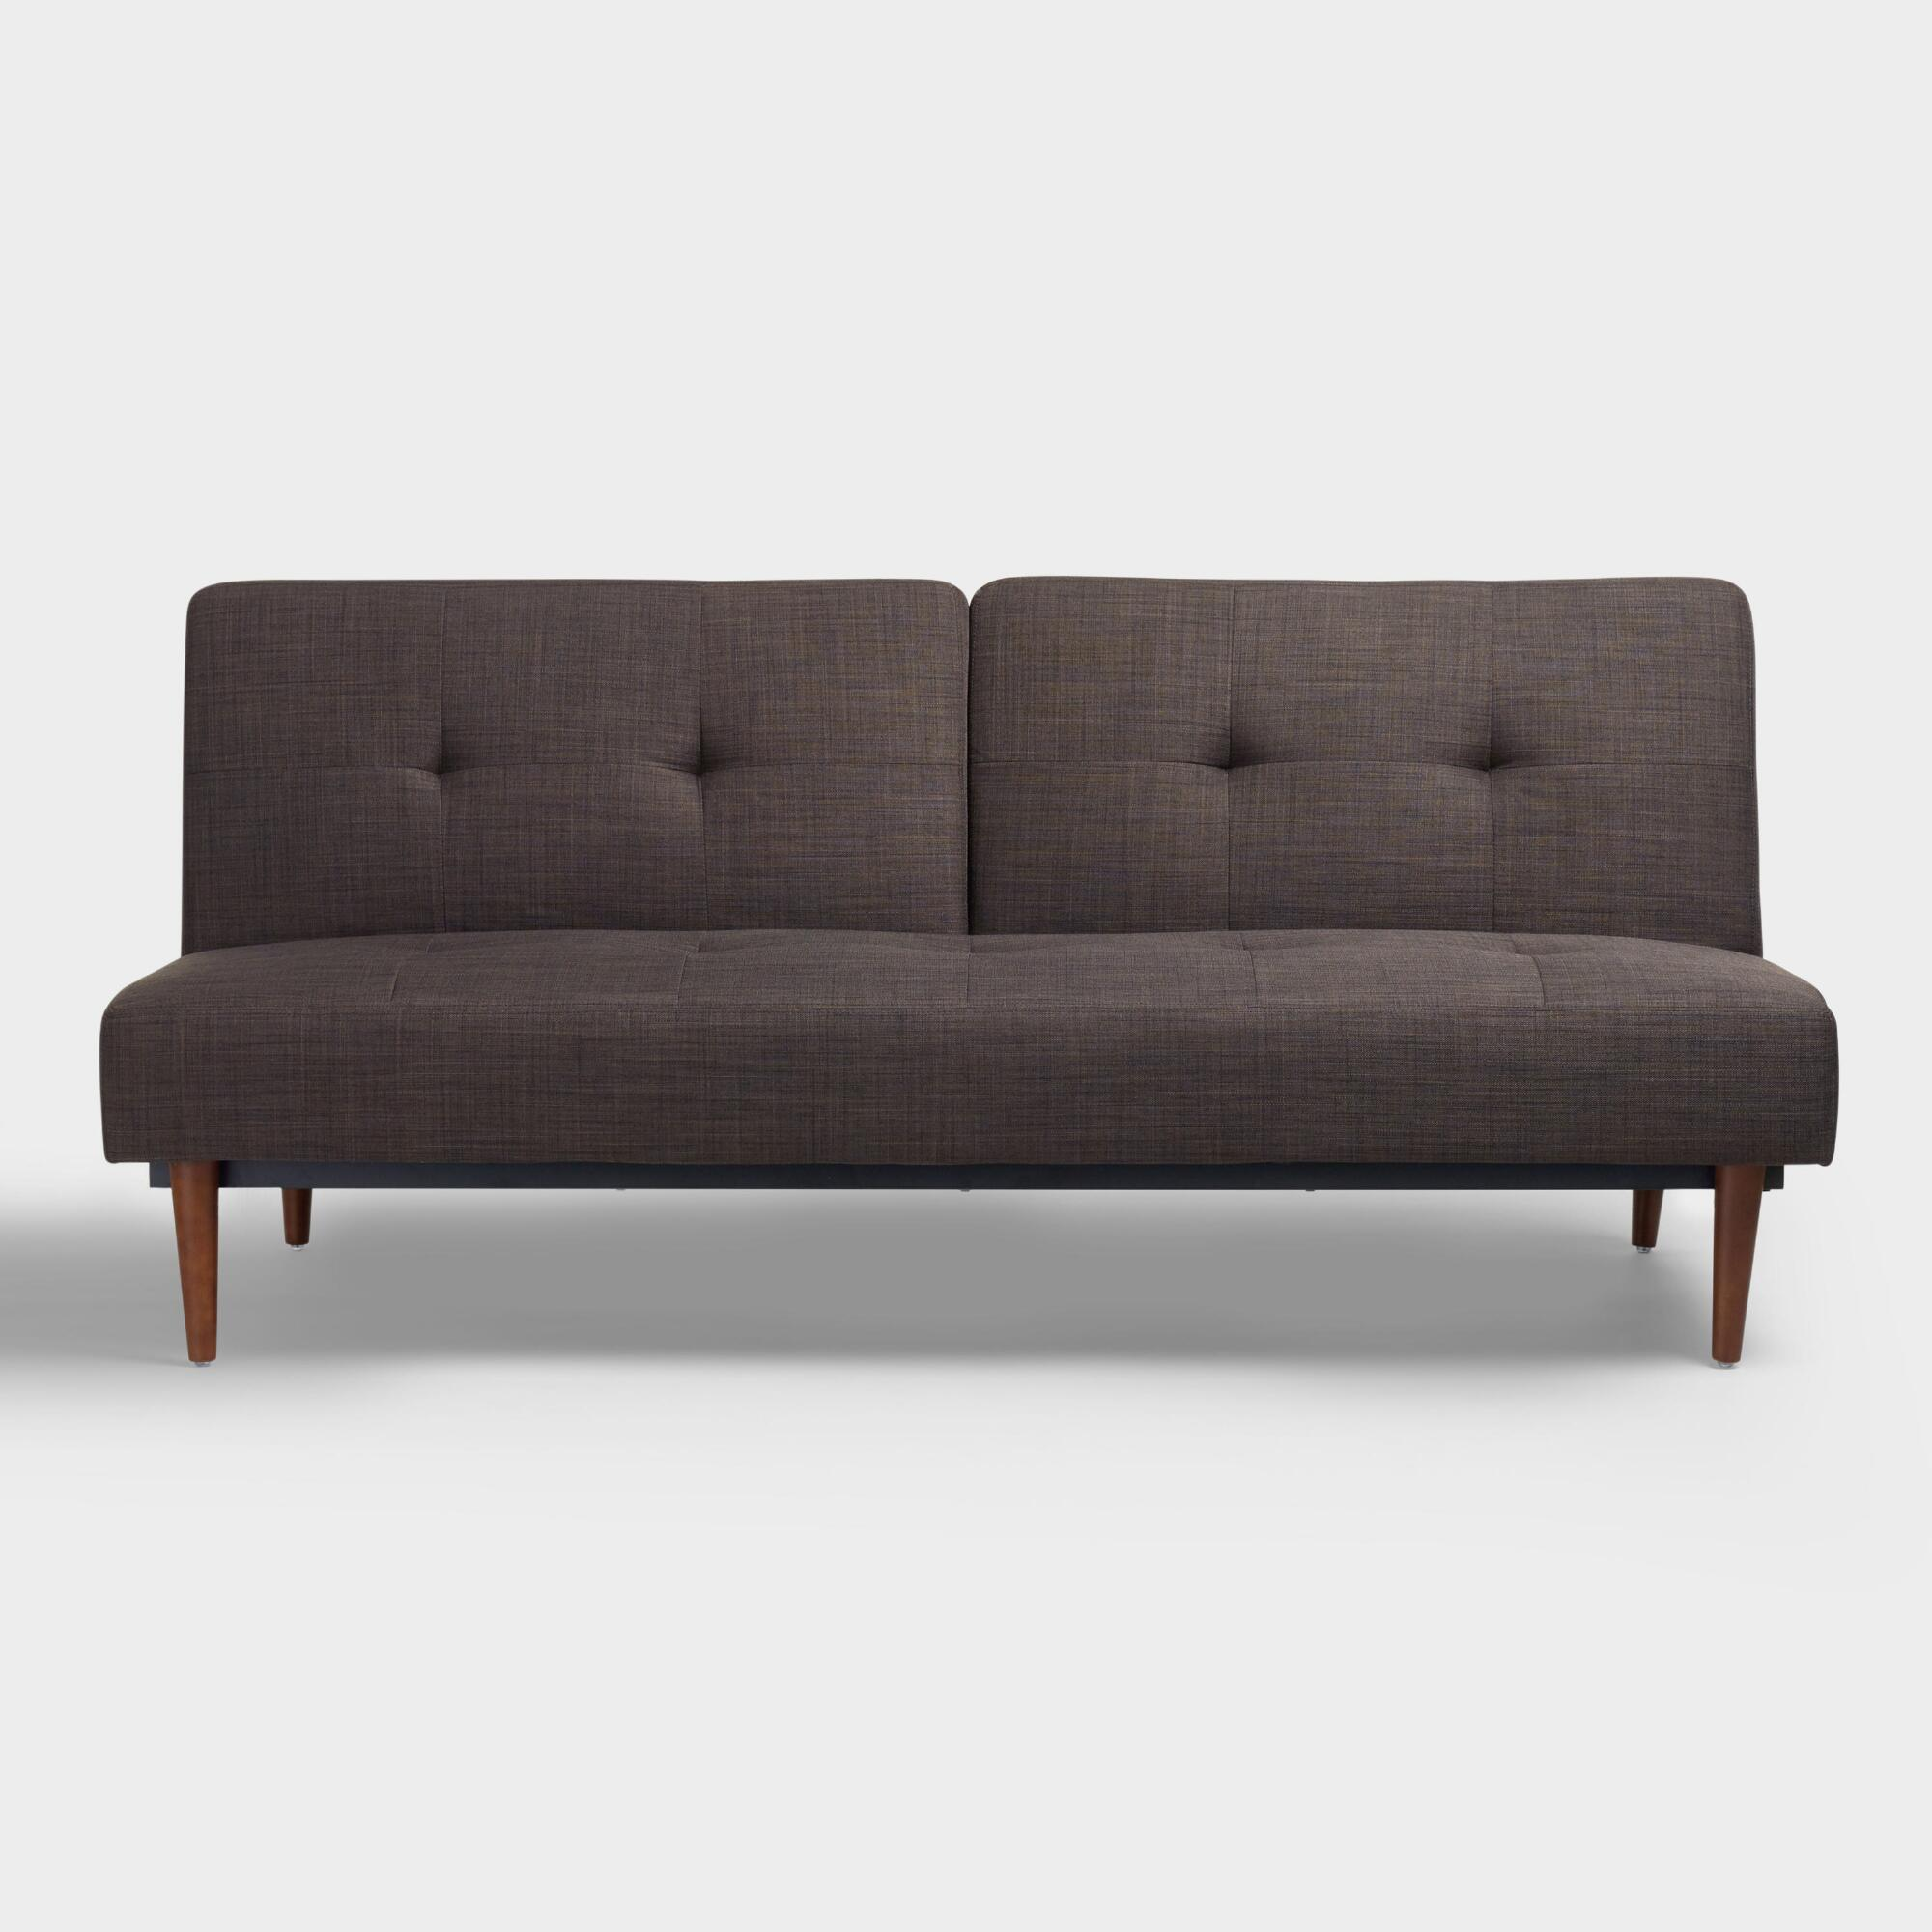 Sofas, Couches and Loveseats | World Market